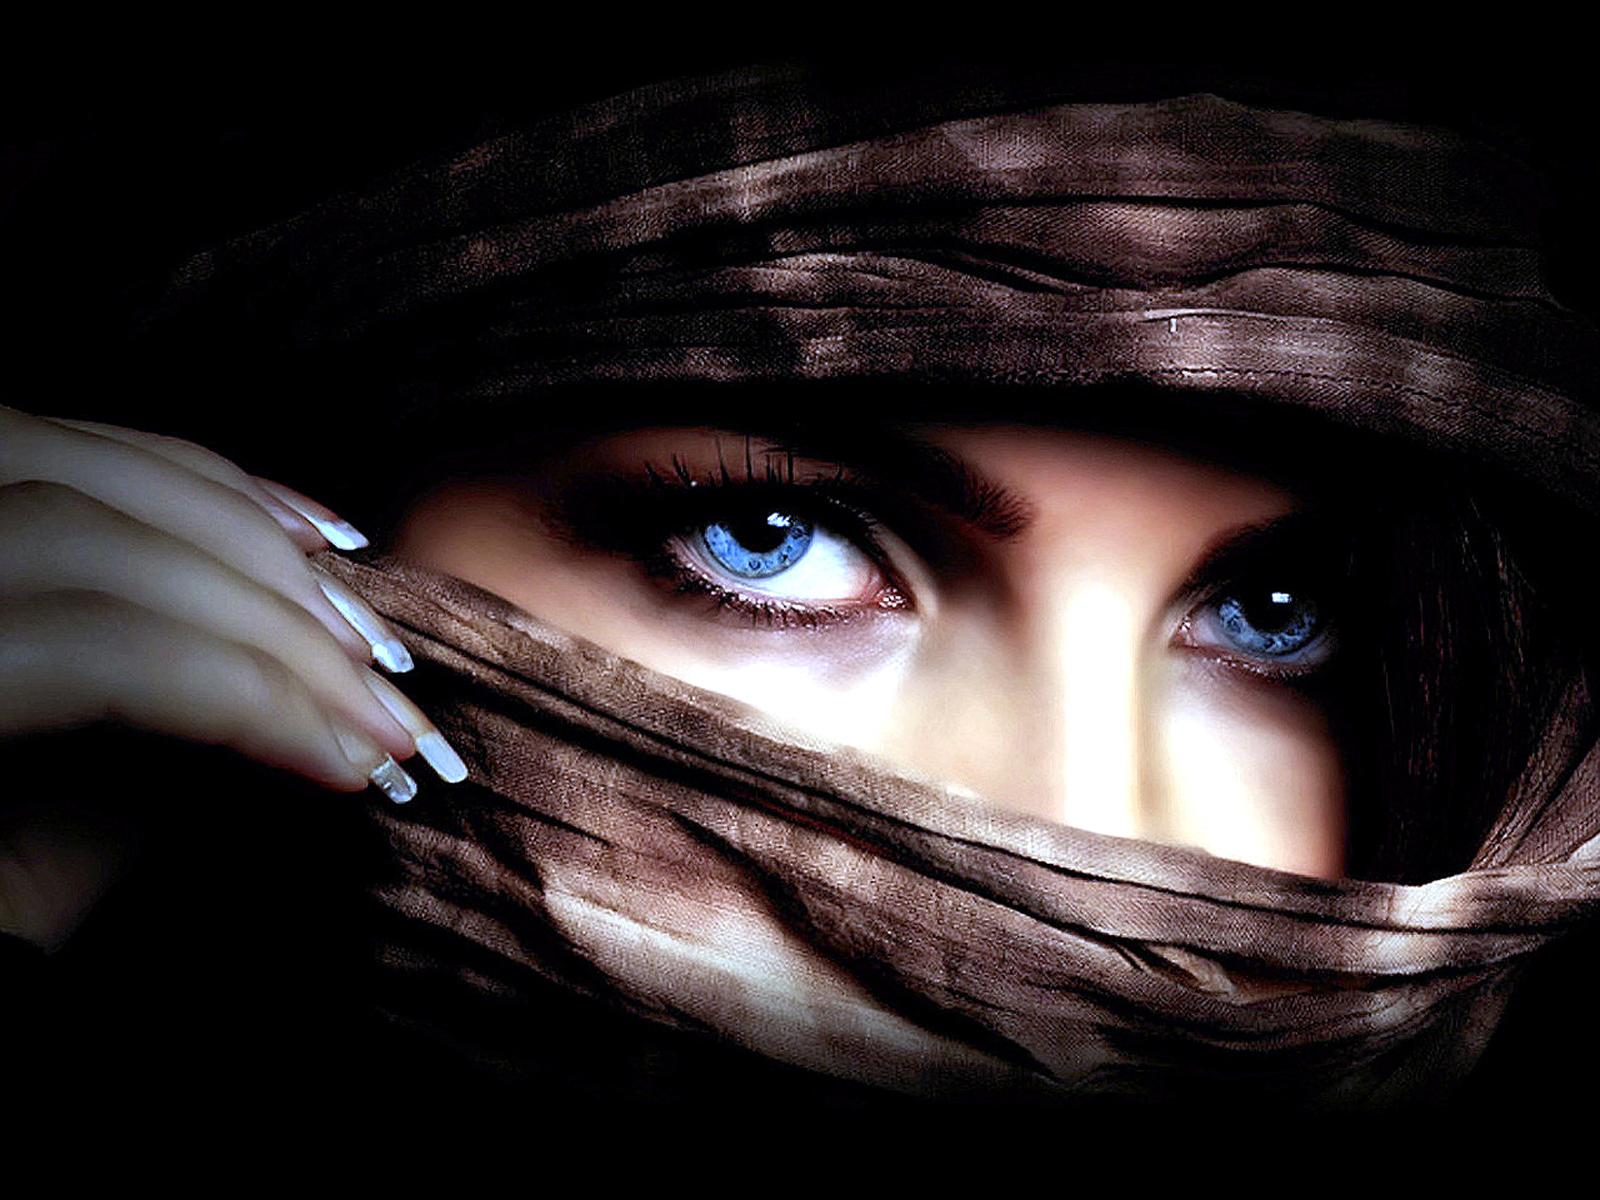 Eye Women at 1024 x 1024 iPad size wallpapers HD quality